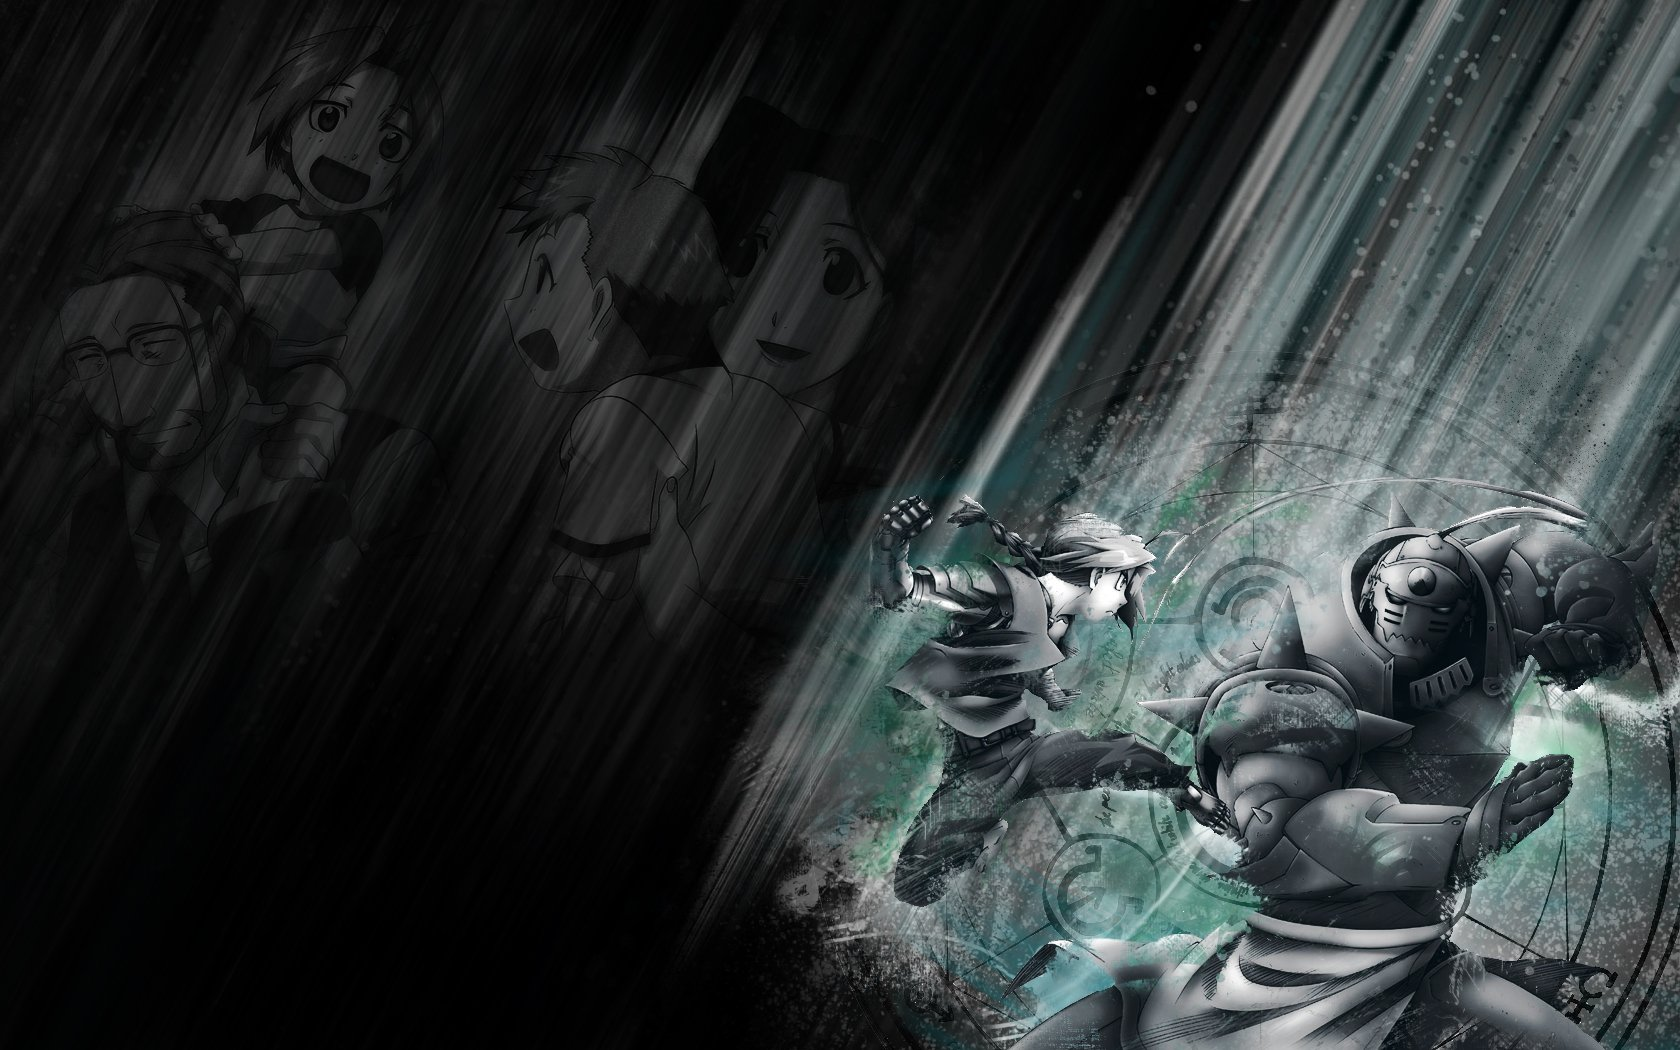 Full Metal Alchemist Wallpaper Fullmetal alchemist memories 1680x1050